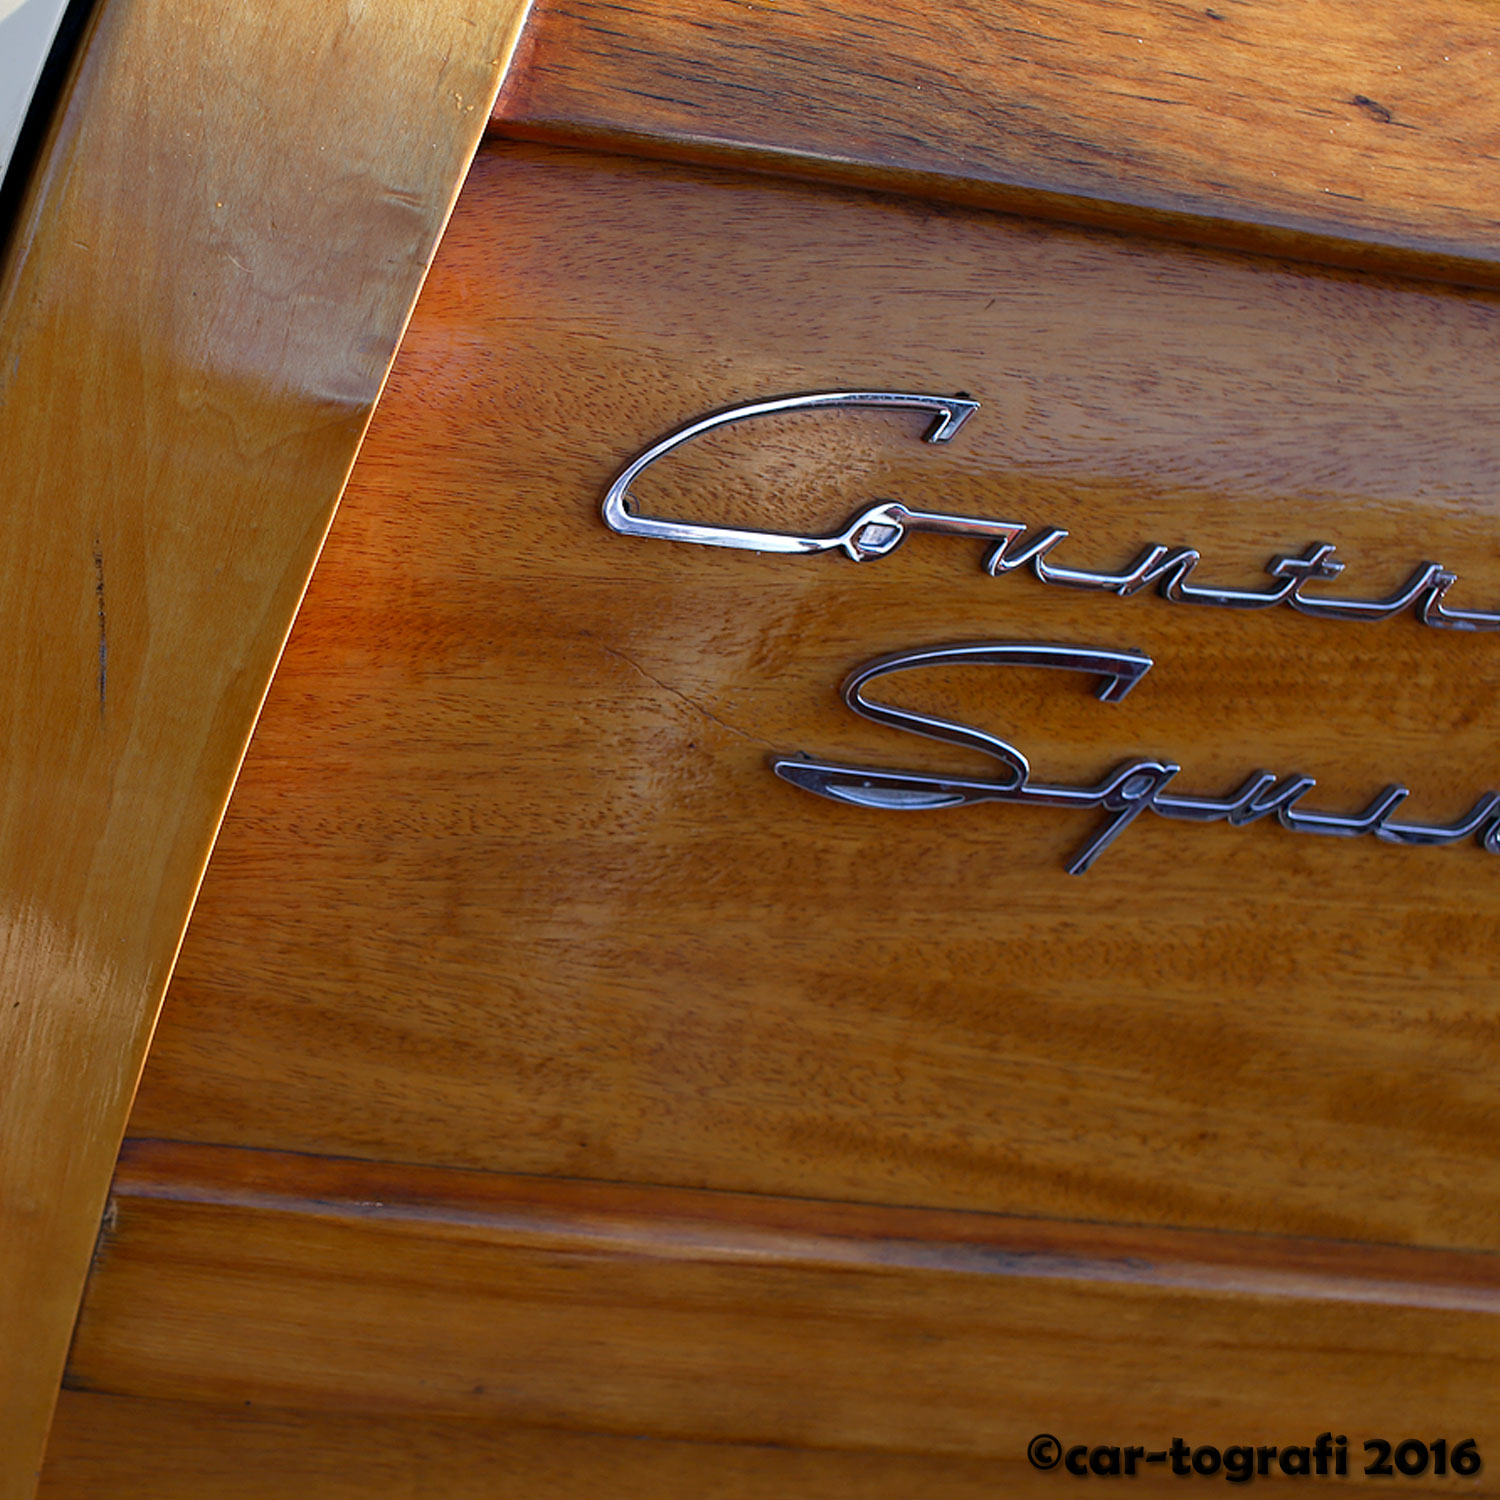 wood-doheny-car-tografi-3.jpg